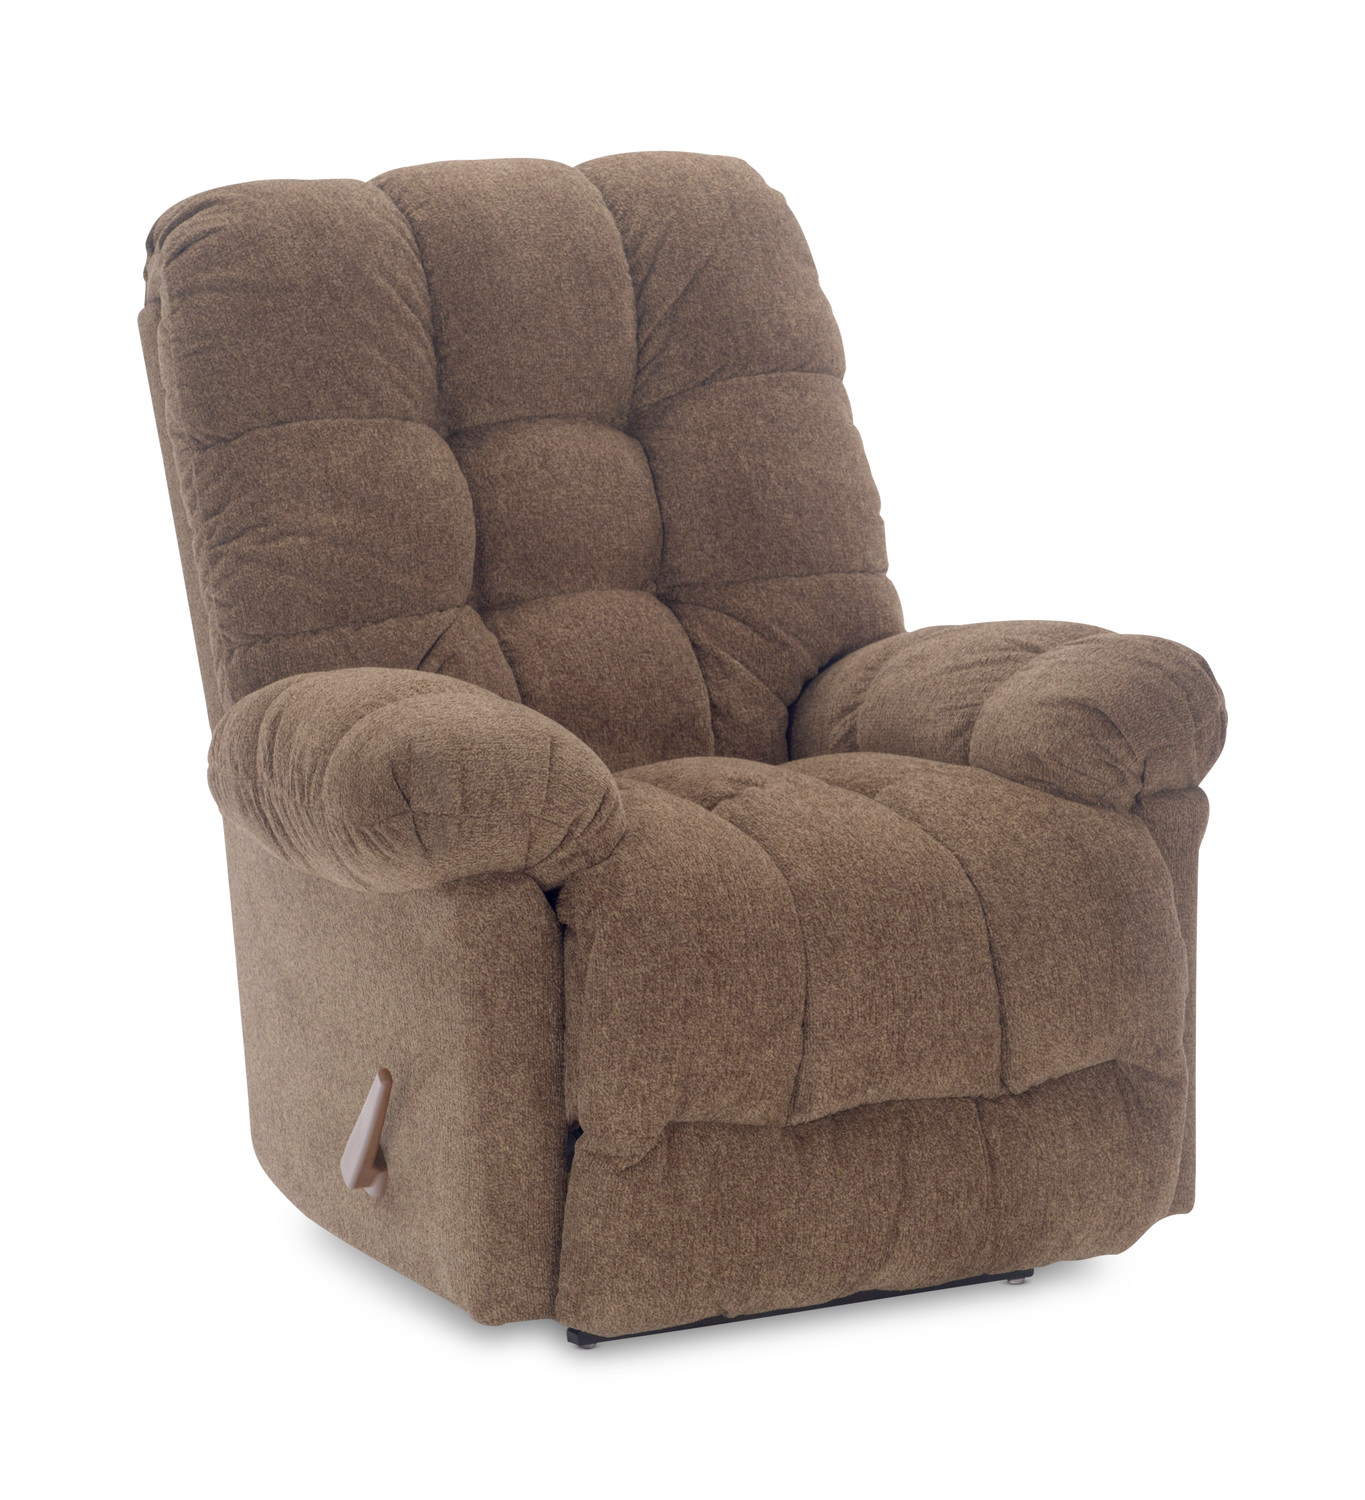 Recliners – Leather Rocker & Swivel – HOM Furniture